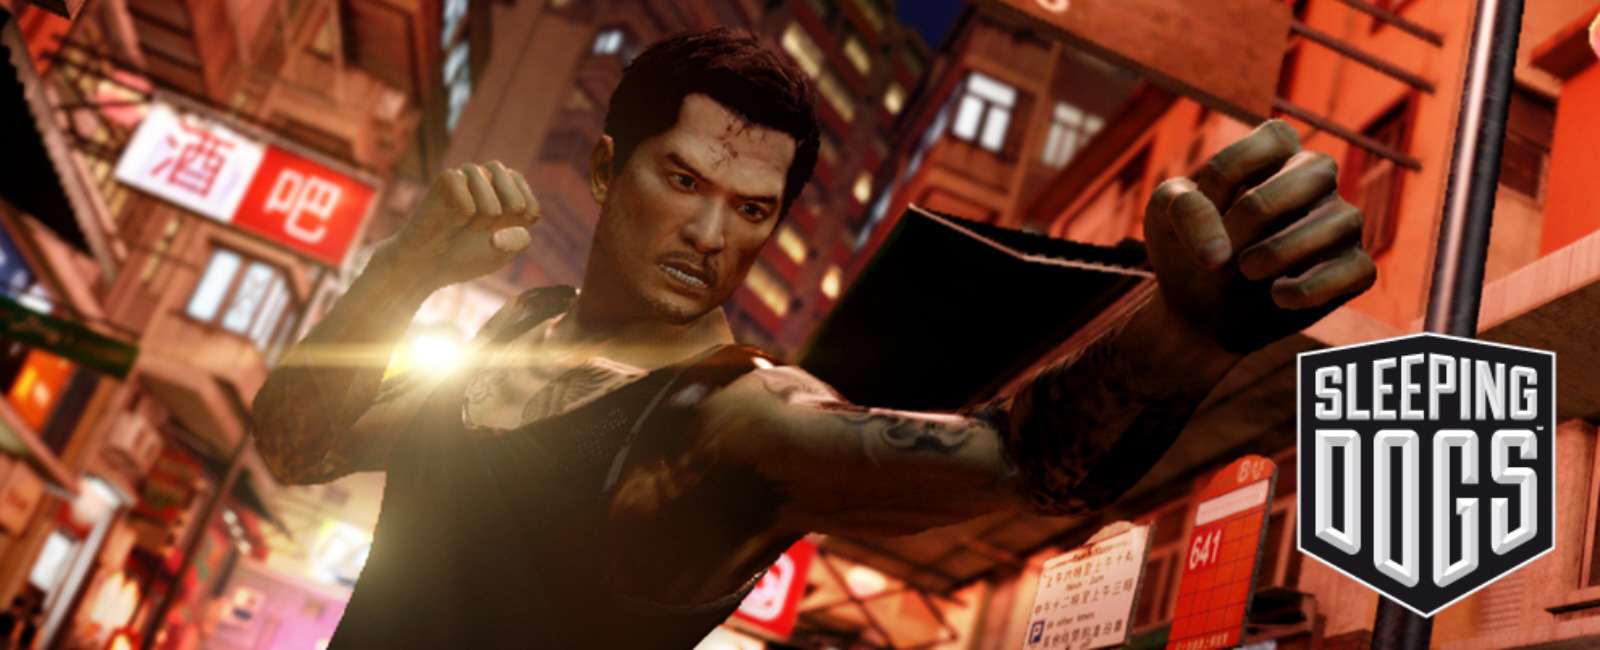 Sleeping Dogs HD & Widescreen Wallpaper 0.546907926743421